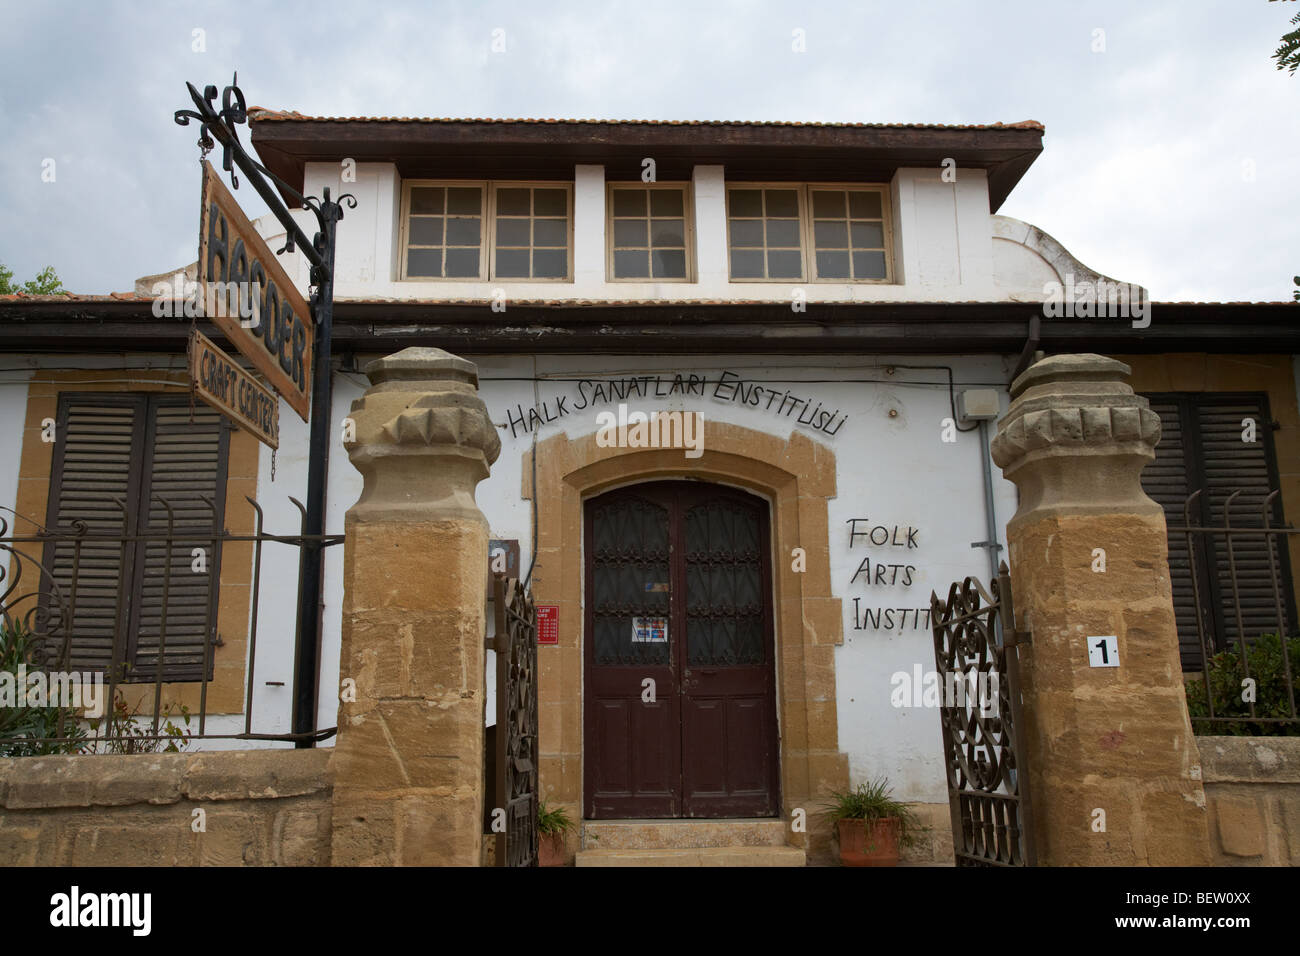 hasder folk arts museum craft centre in nicosia TRNC turkish republic of northern cyprus - Stock Image